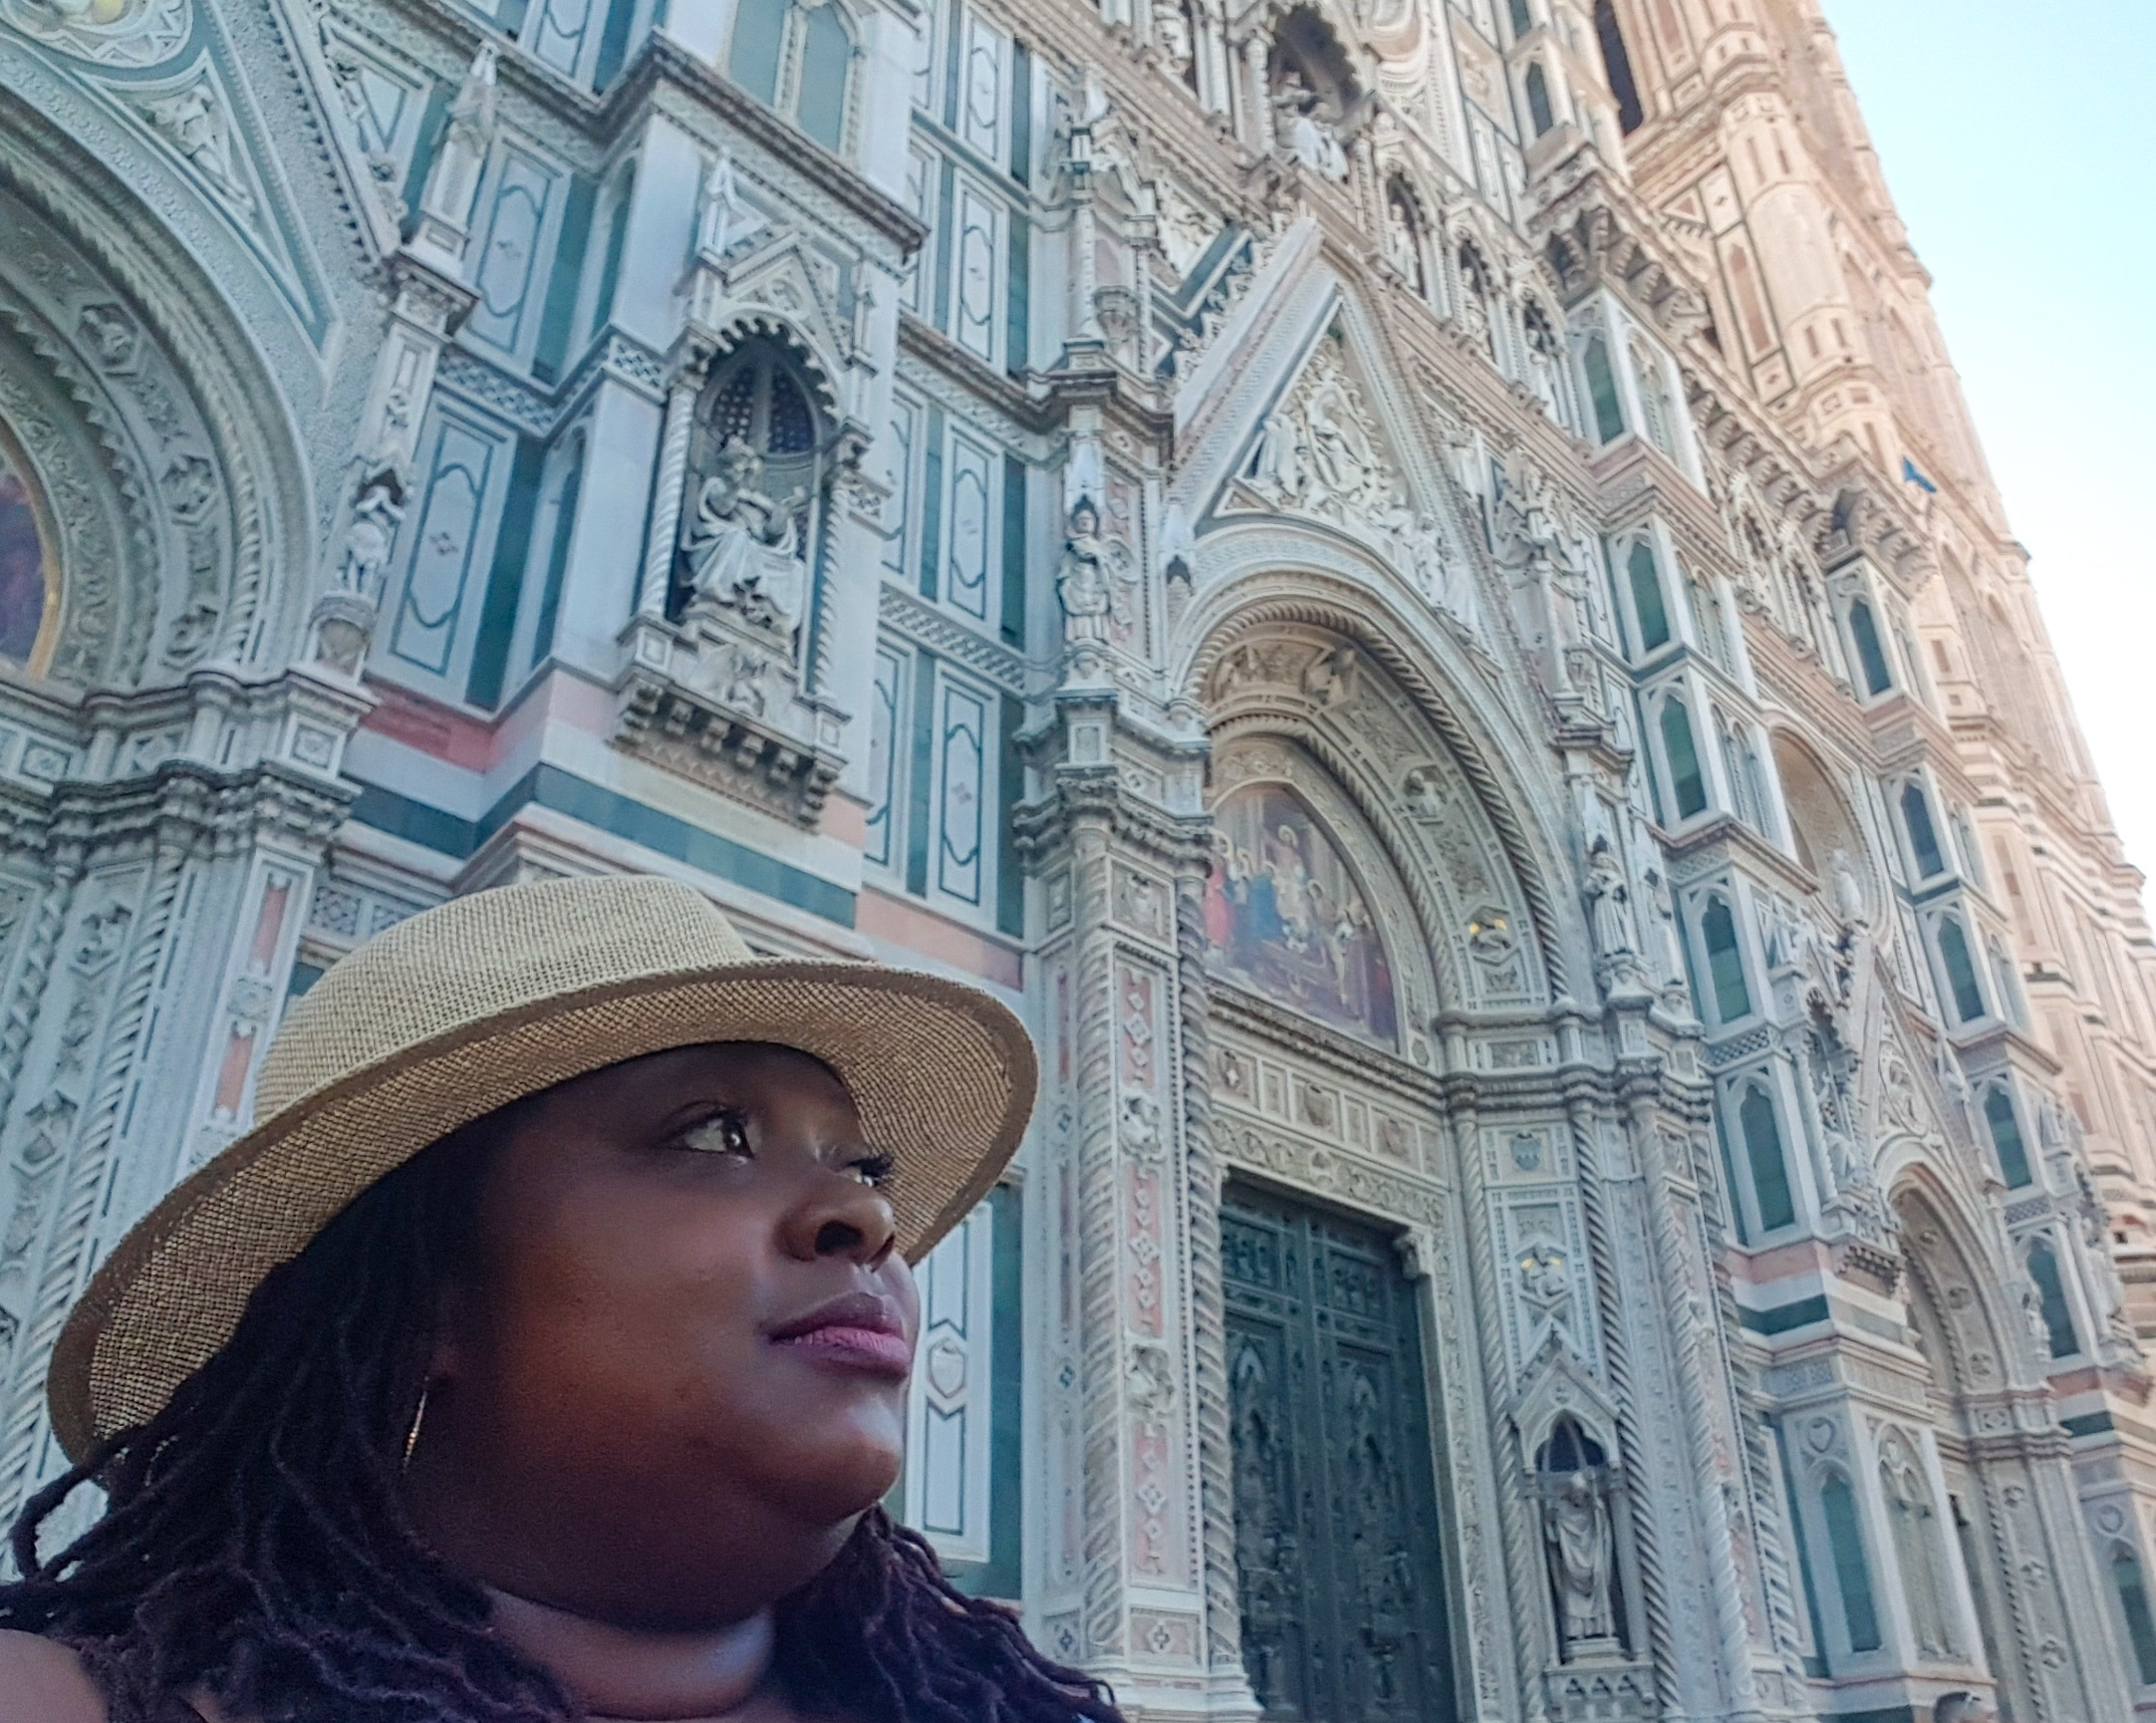 The cathedrals in Italy were so beautiful. This one is located in Florence.